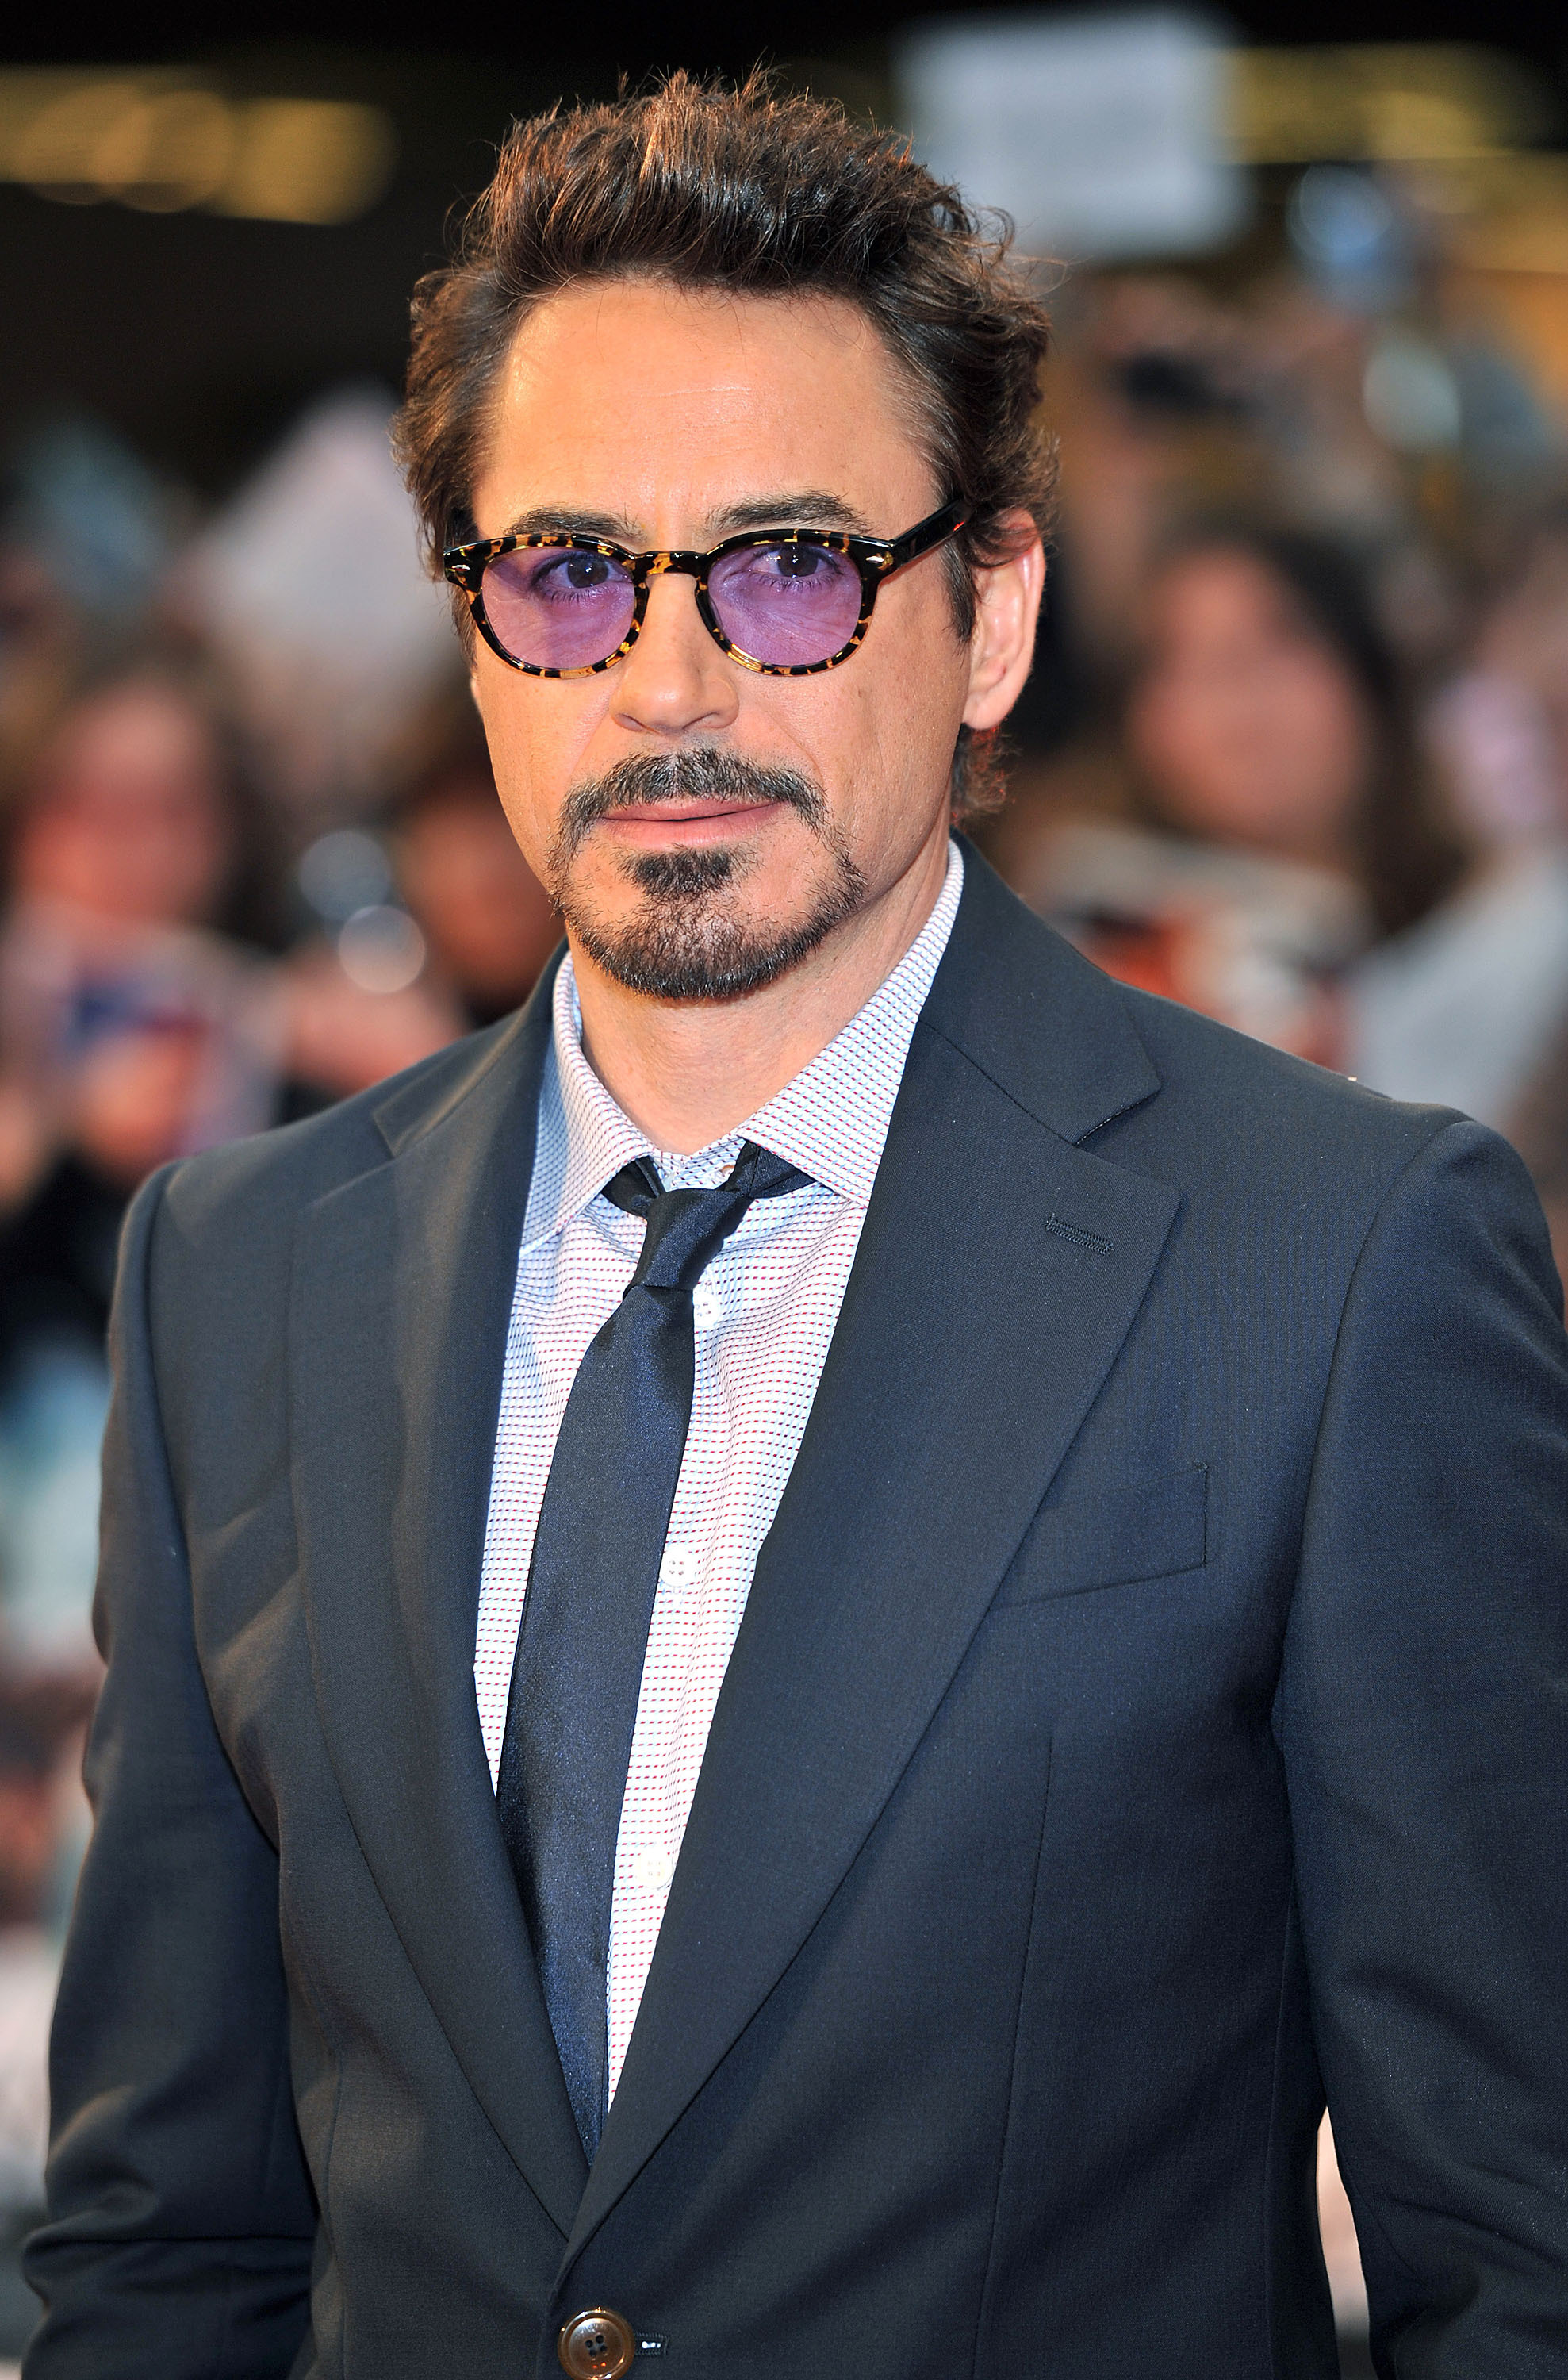 Robert Downey Jr. - Iron Man - Top 10 Sexiest, Hottest Superheroes